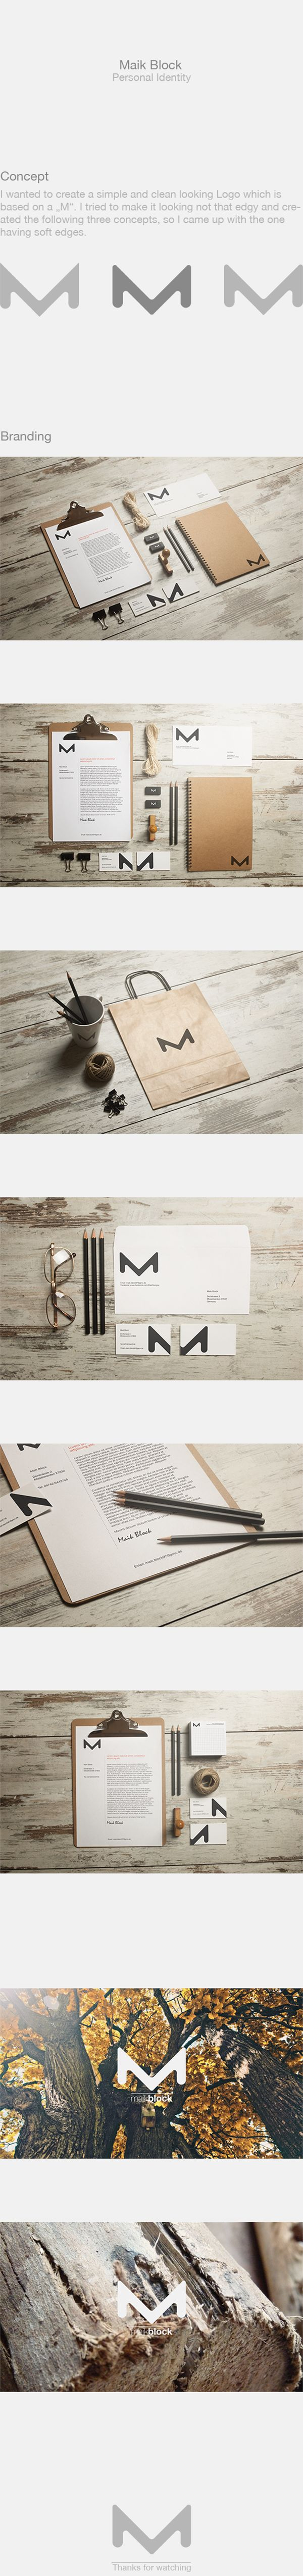 Cool Brand Identity Design on the Internet. Maik Block. #branding #brandidentity #identitydesign